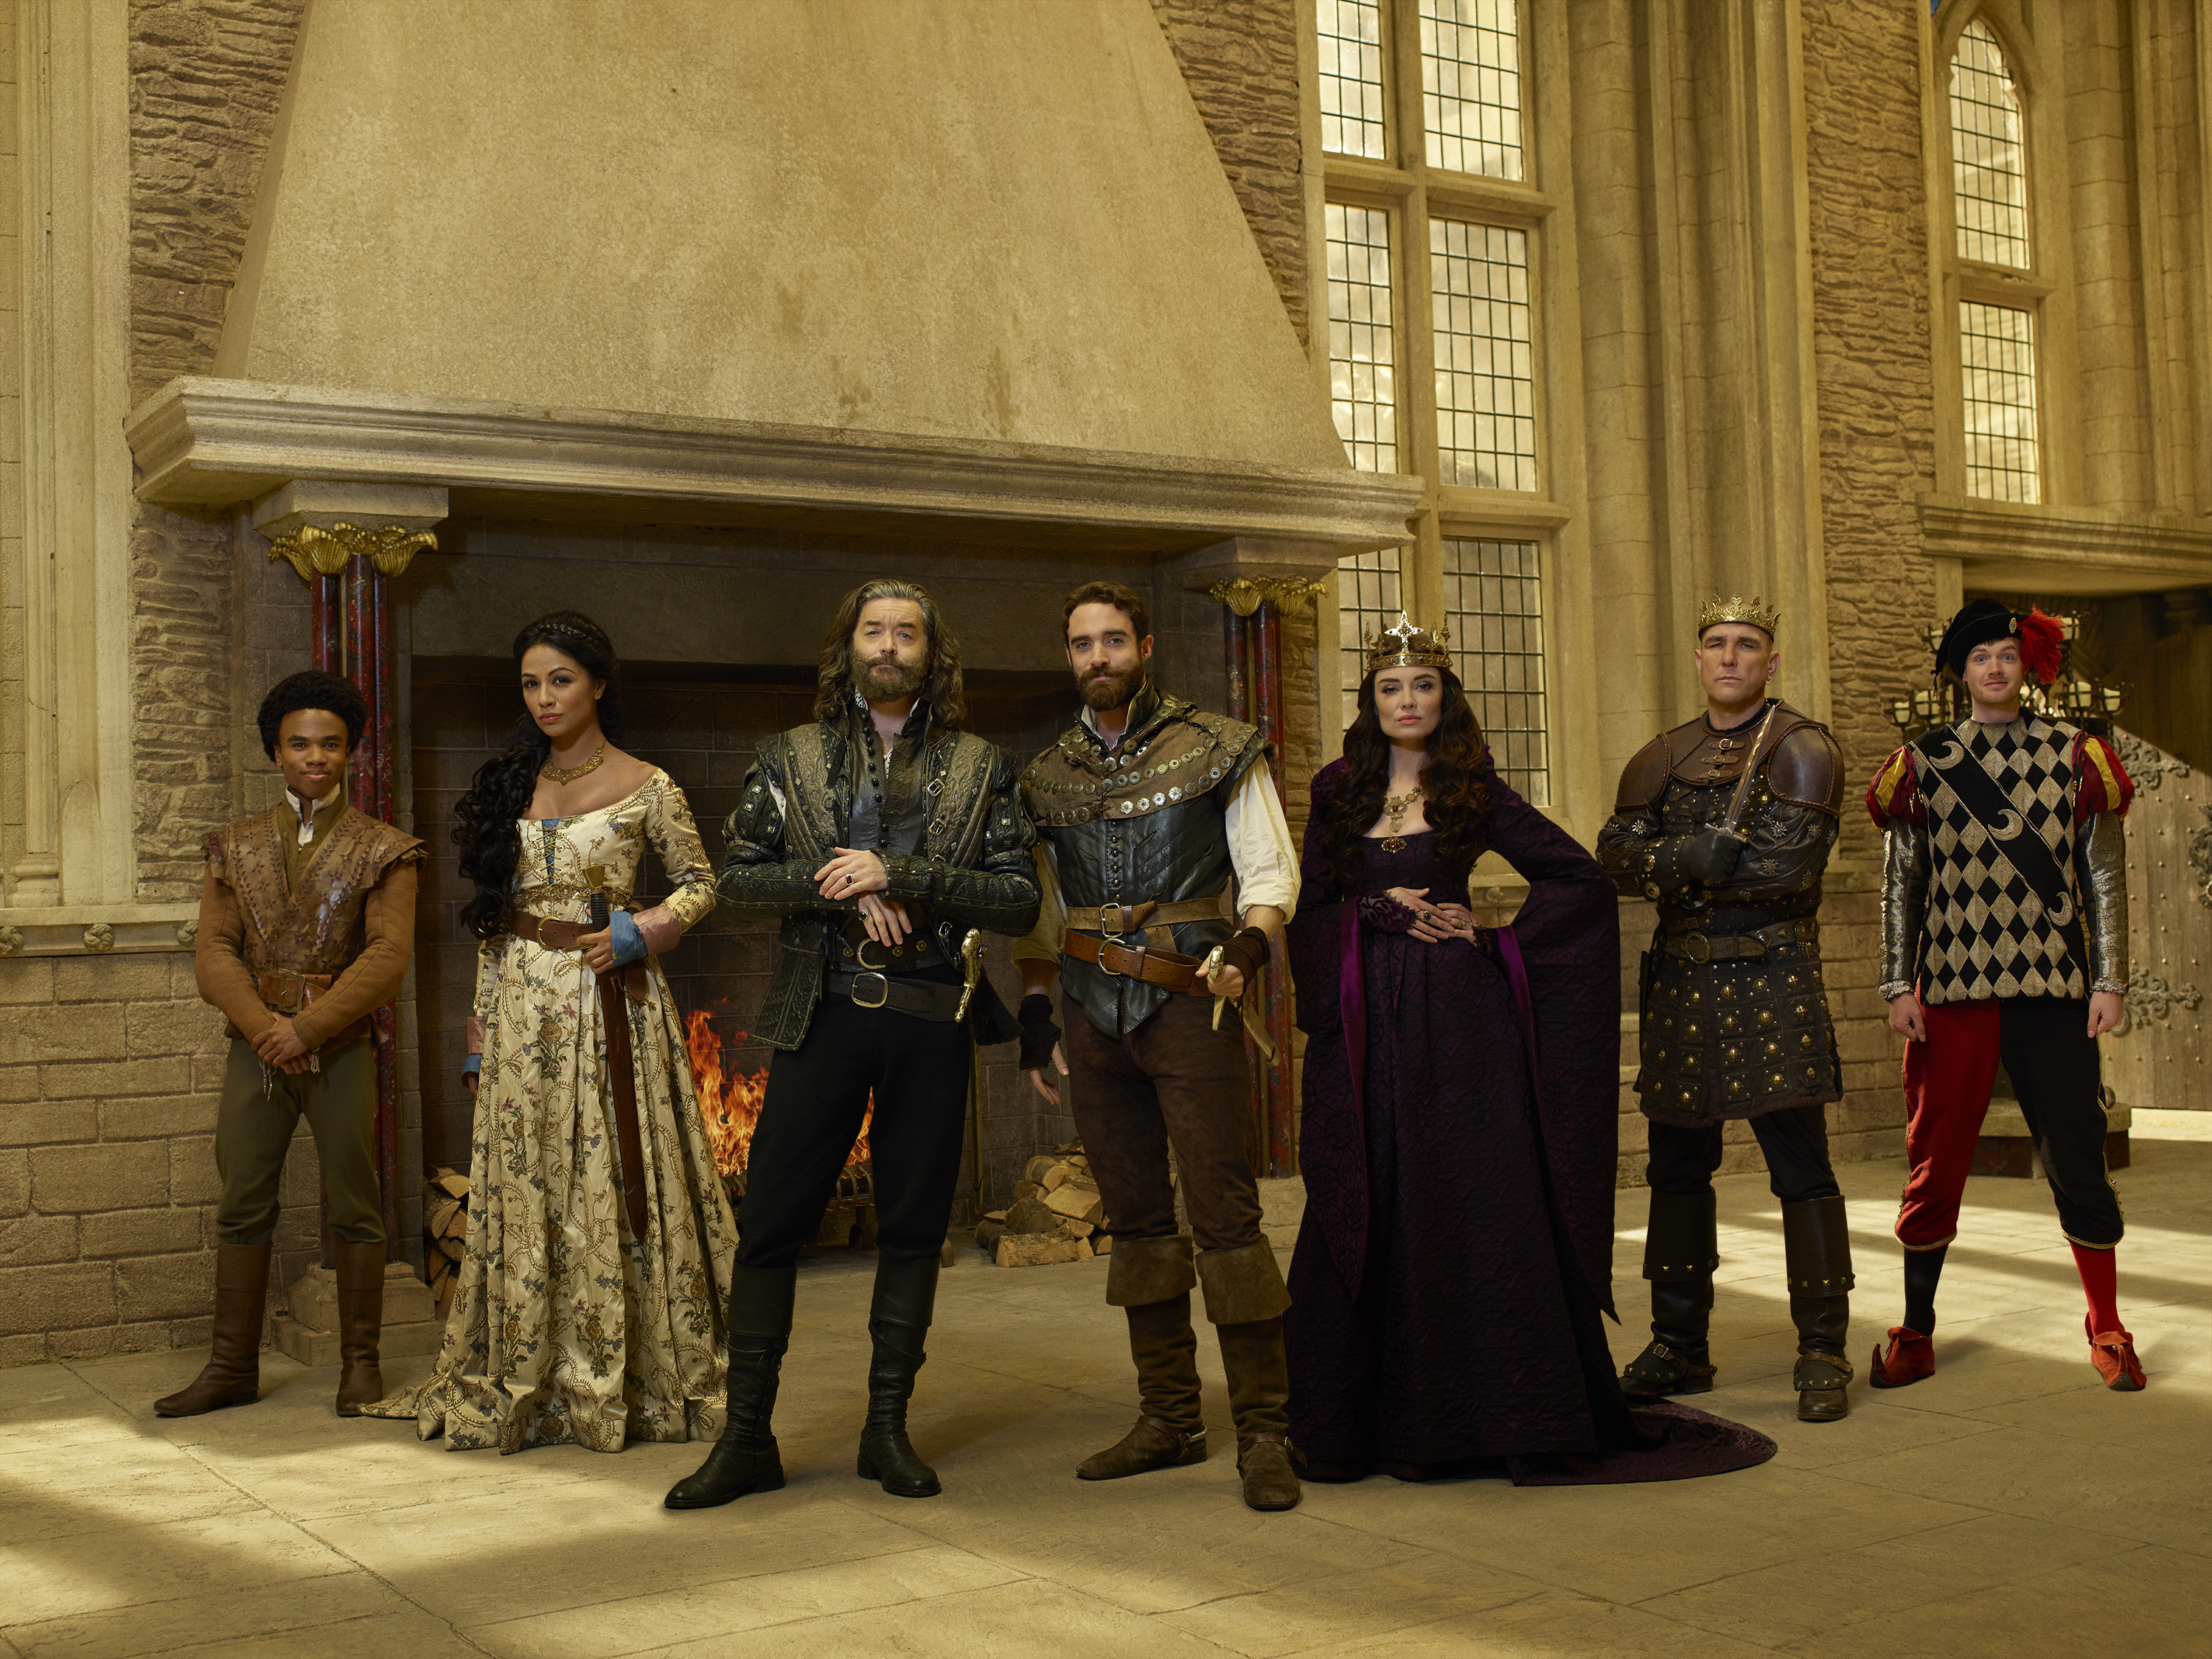 LUKE YOUNGBLOOD, KAREN DAVID, TIMOTHY OMUNDSON, JOSHUA SASSE, MALLORY JANSEN, VINNIE JONES, BEN PRESLEY